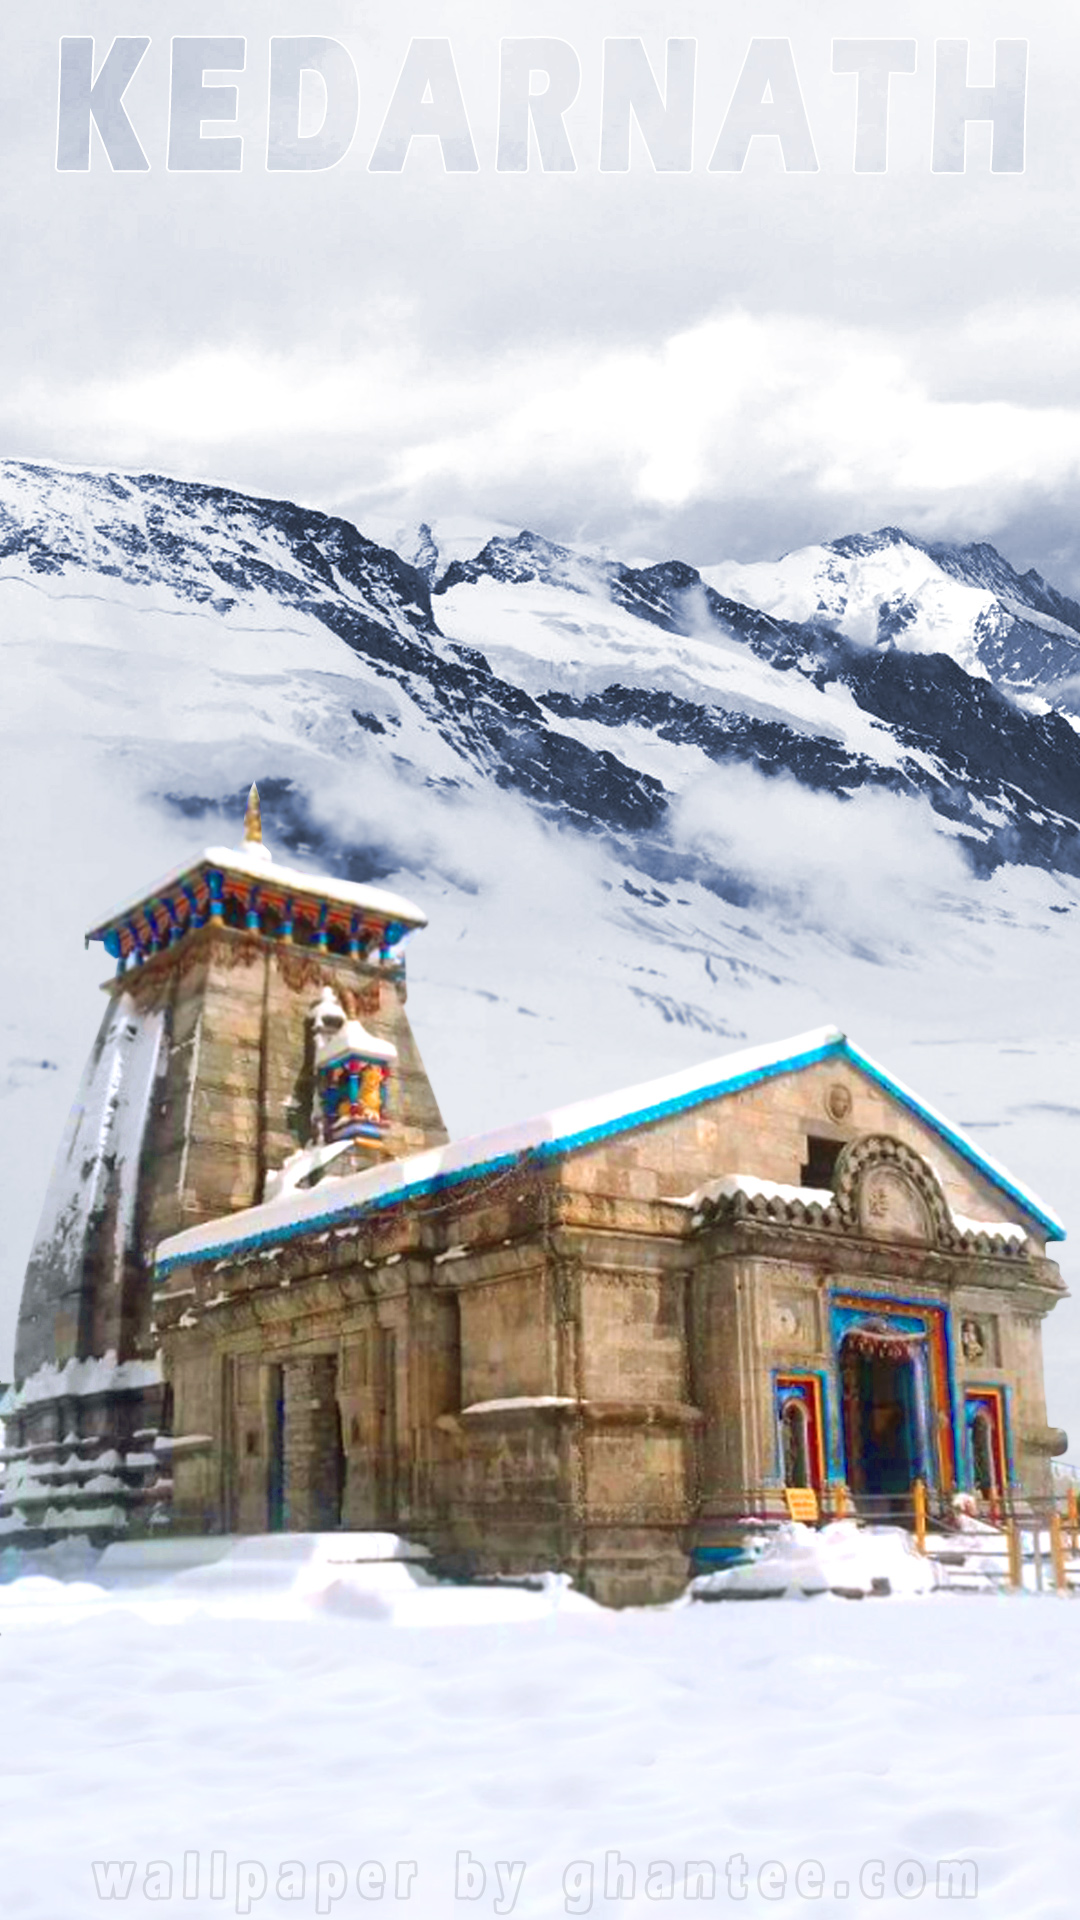 kedarnath wallpaper – Download for android devices and iphones